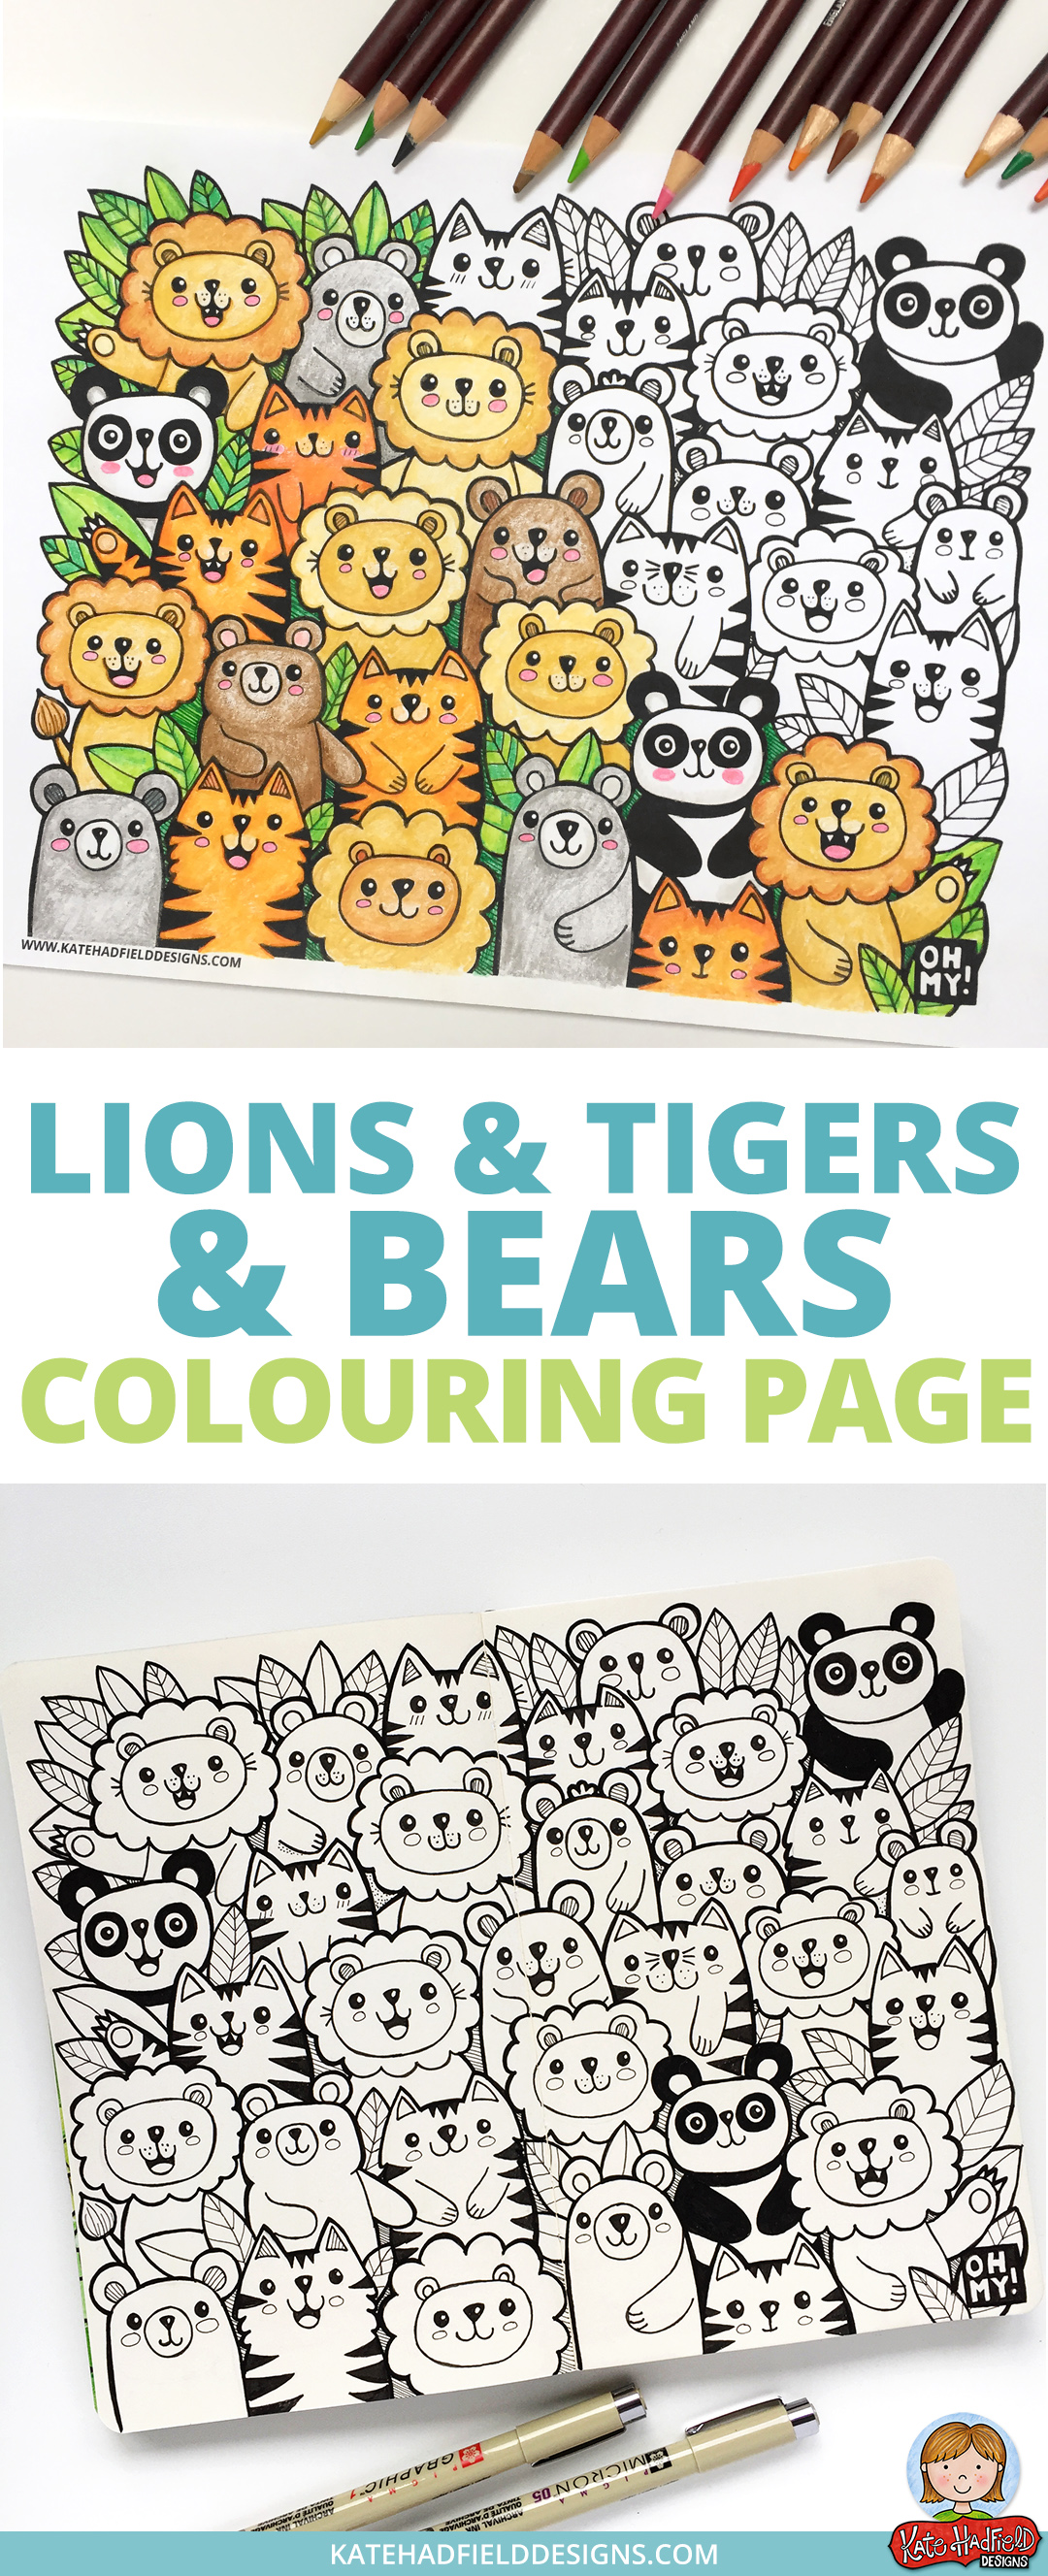 Fun kawaii style Lions and Tigers and Bears colouring page! Download this free colouring sheet and color in using pencils, crayons or markers. This is a fun coloring activity for kids and grown-ups alike!